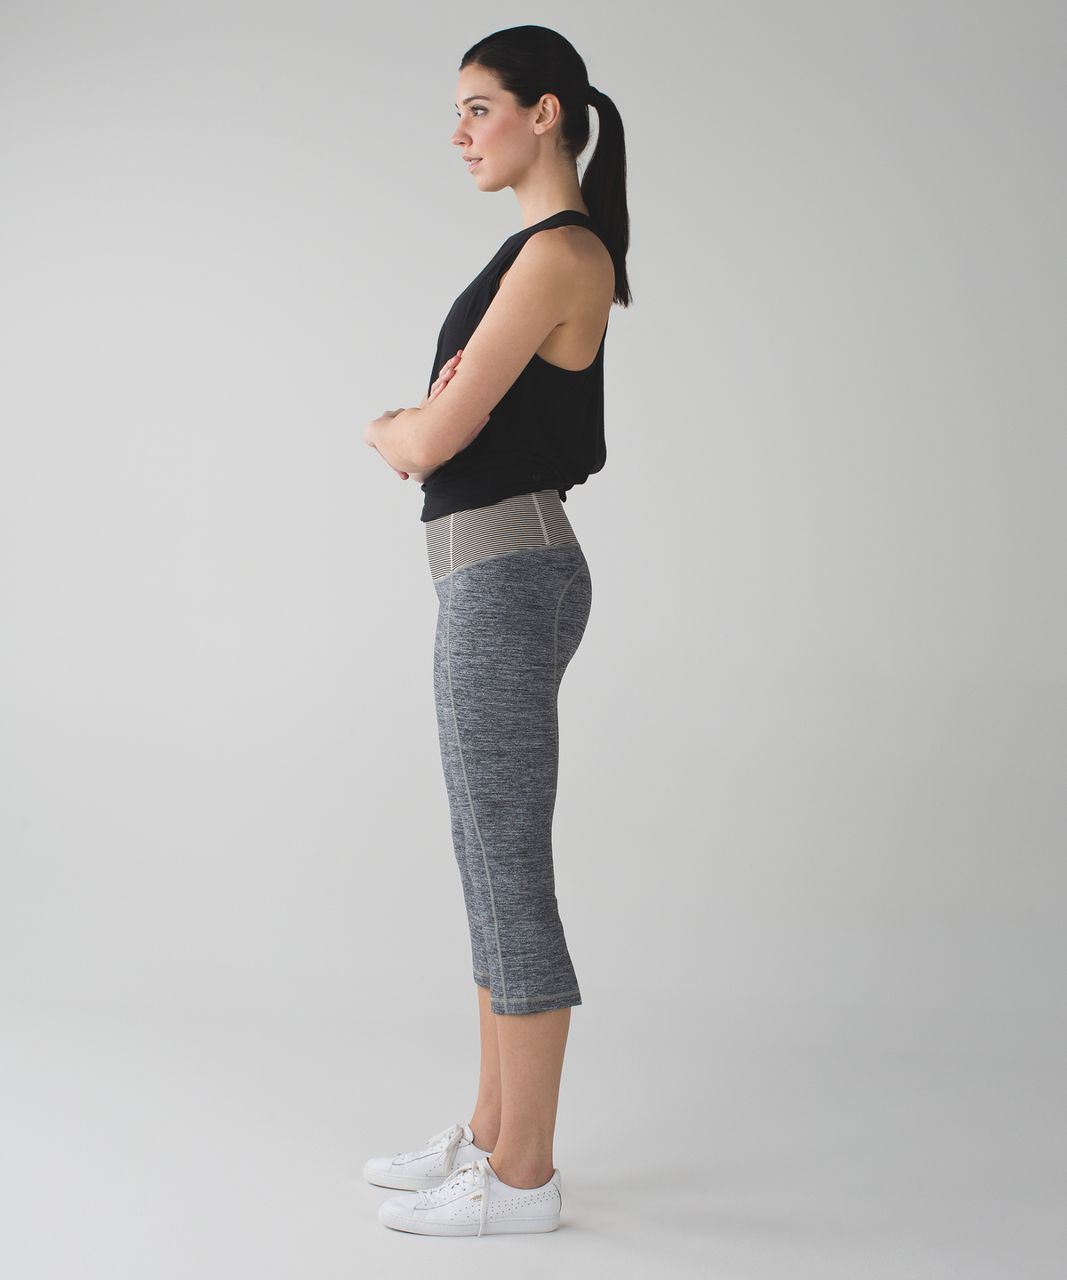 Lululemon Gather & Crow Crop II - Space Dye Camo Black Dark Slate / Tonka Stripe Black Cashew